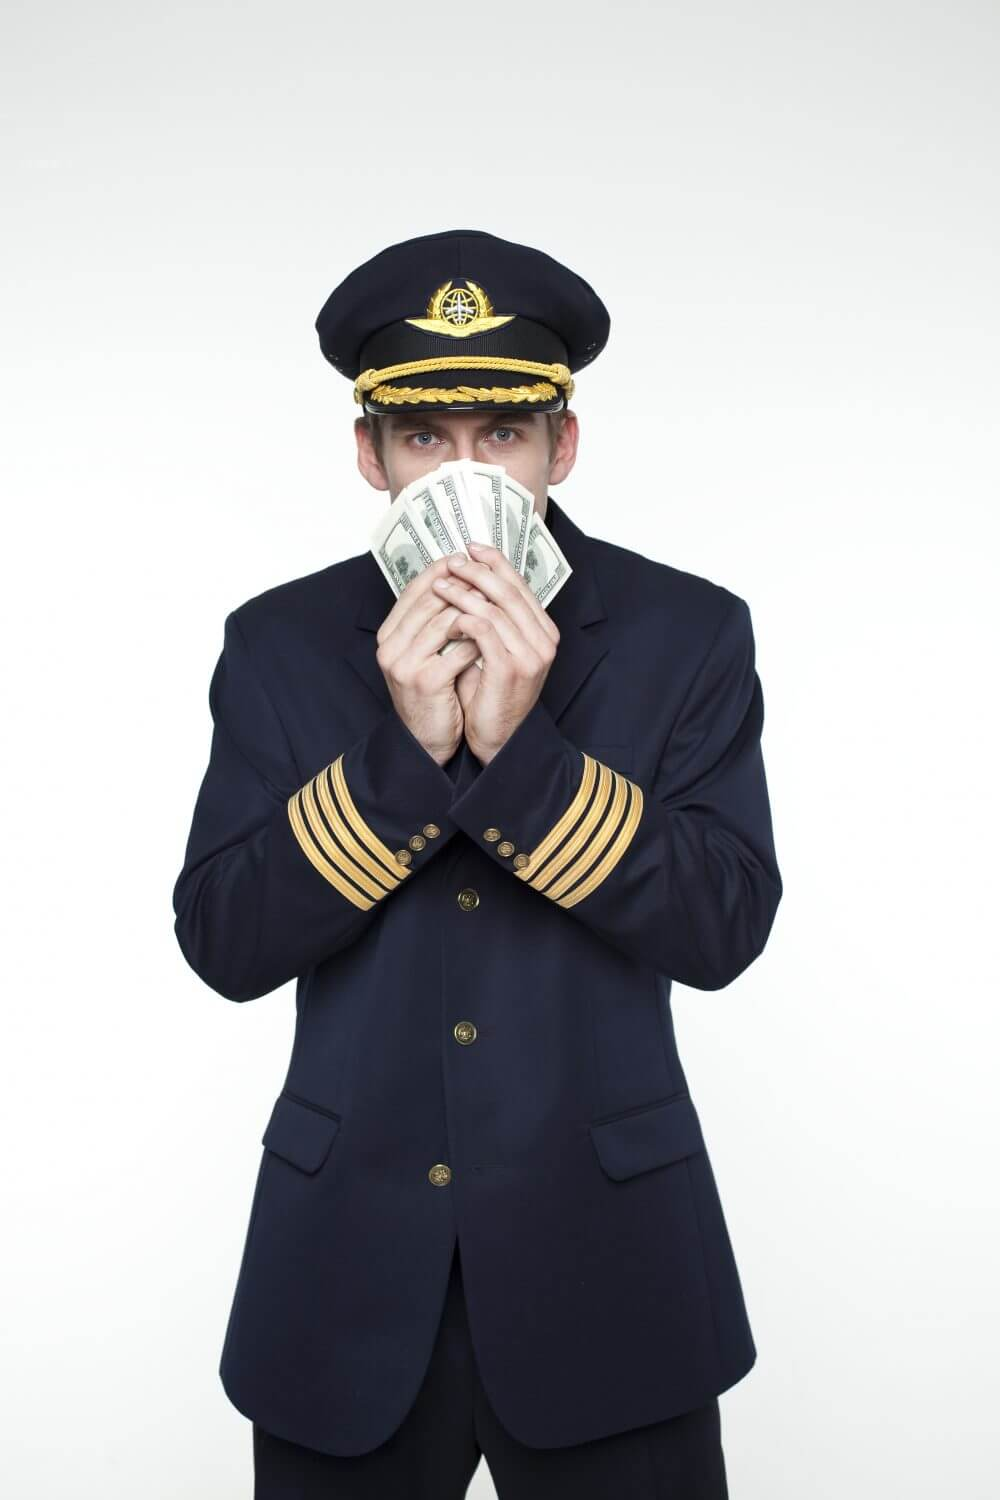 Financing Commercial Flight Training